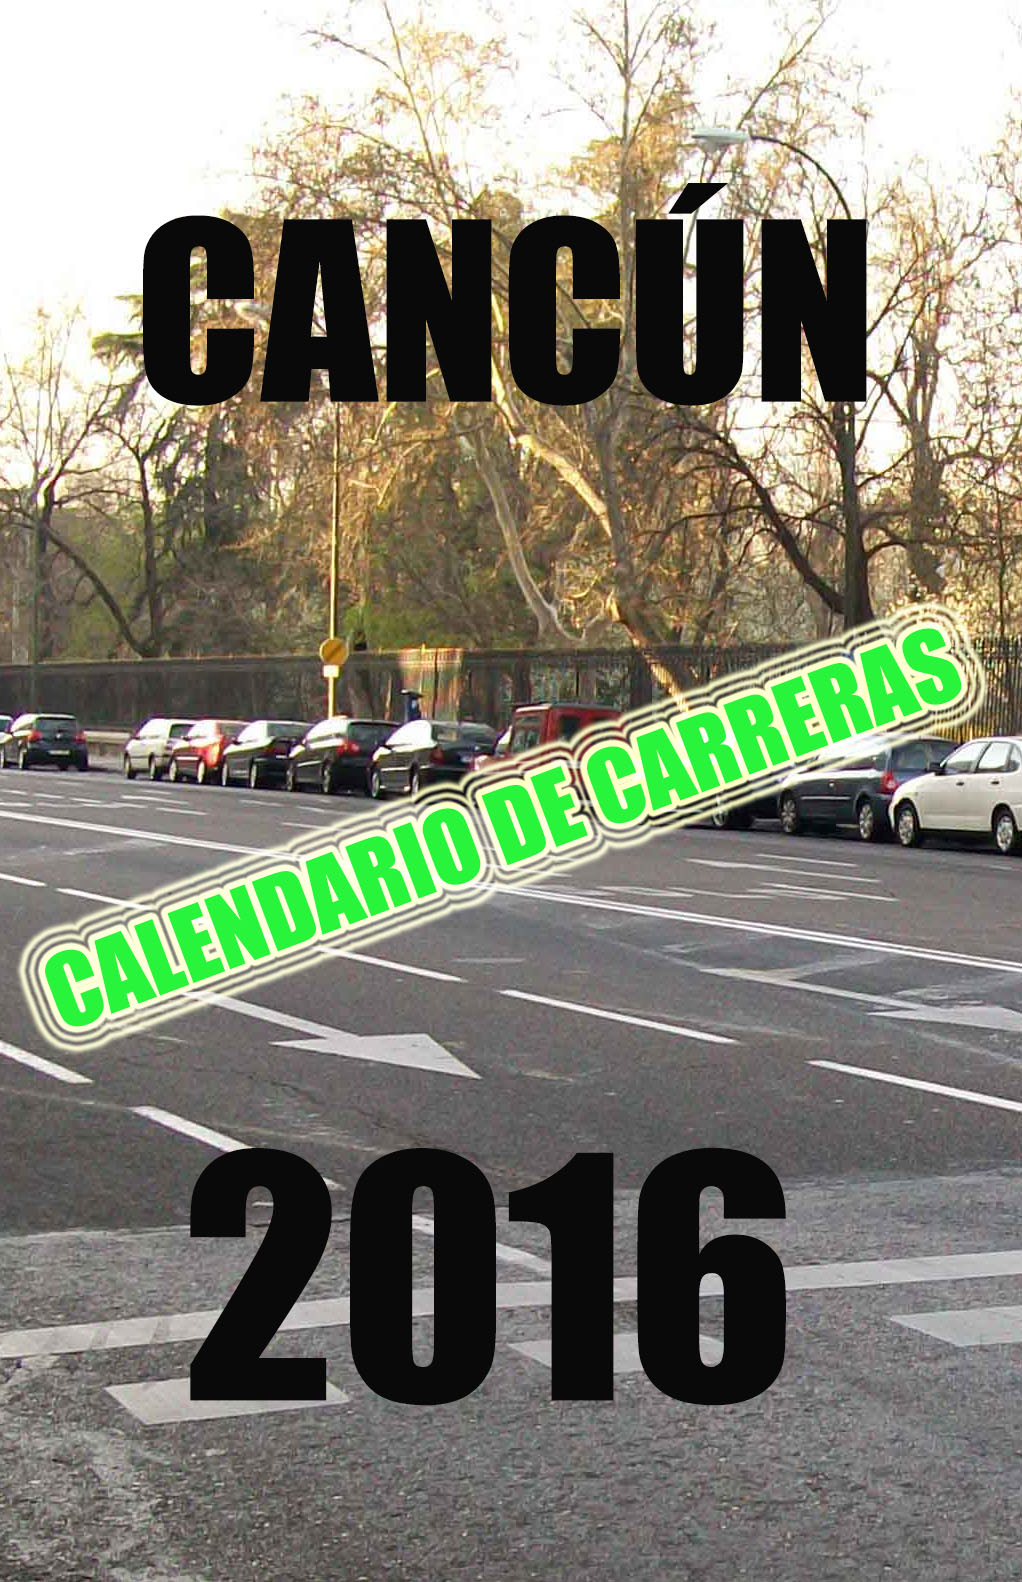 CALENDARIO CARRERAS PEDESTRES